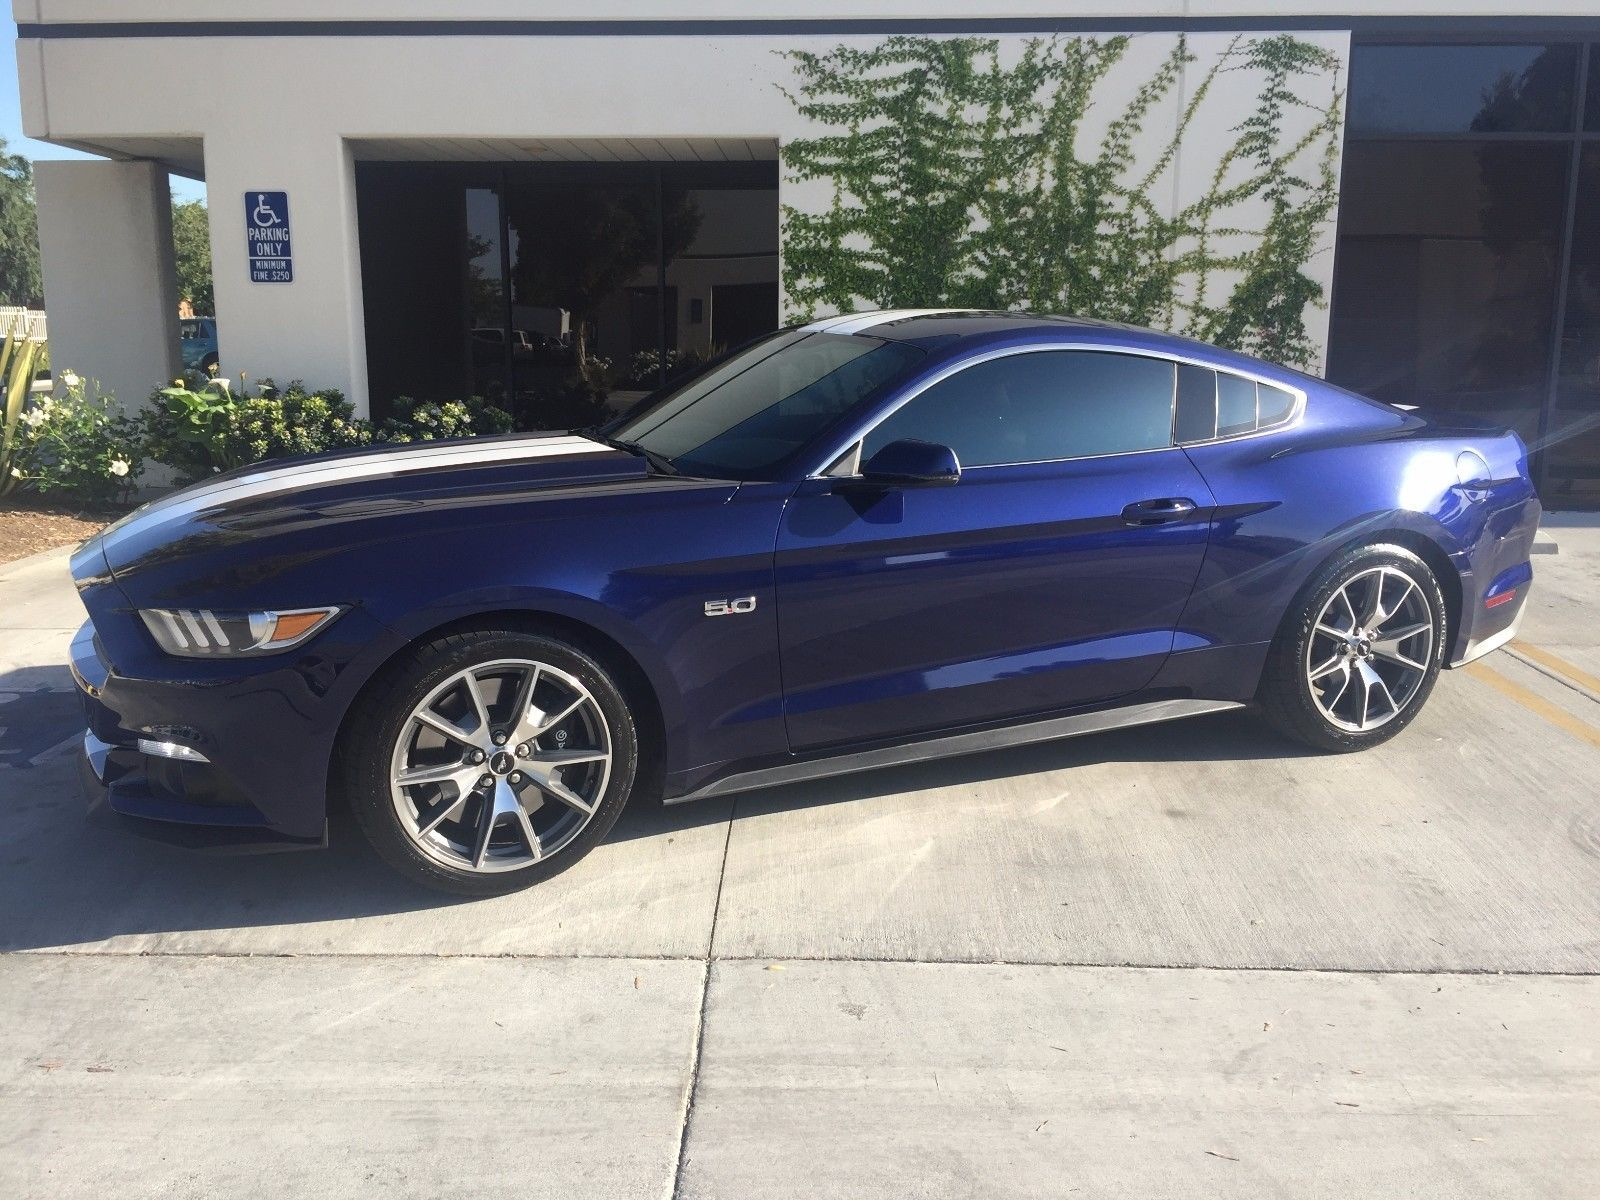 Ebay 2015 ford mustang gt 50 years limited edition coupe 2 door 2015 ford